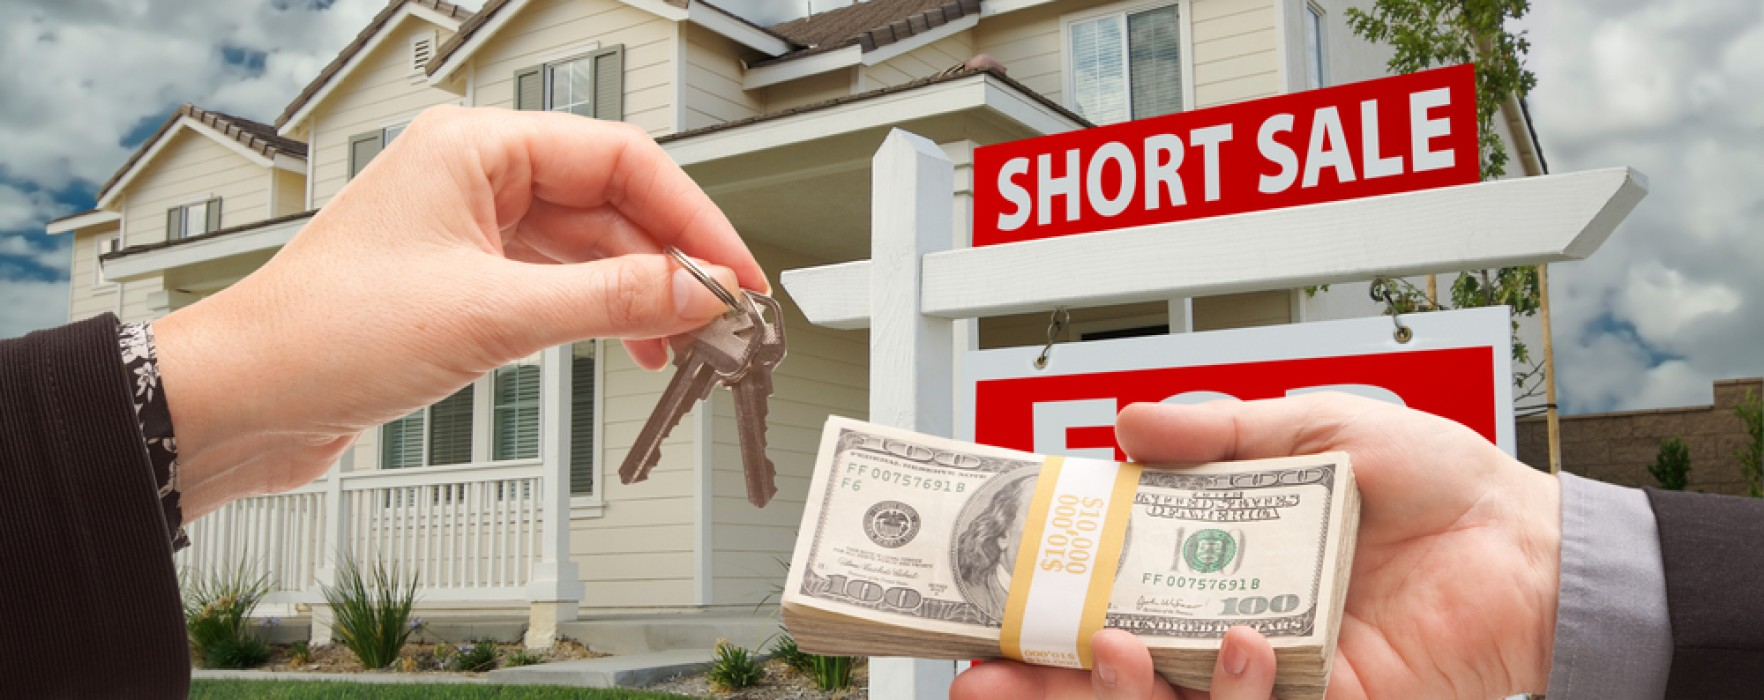 Tips to Consider When Making an Offer on a Short Sale Property